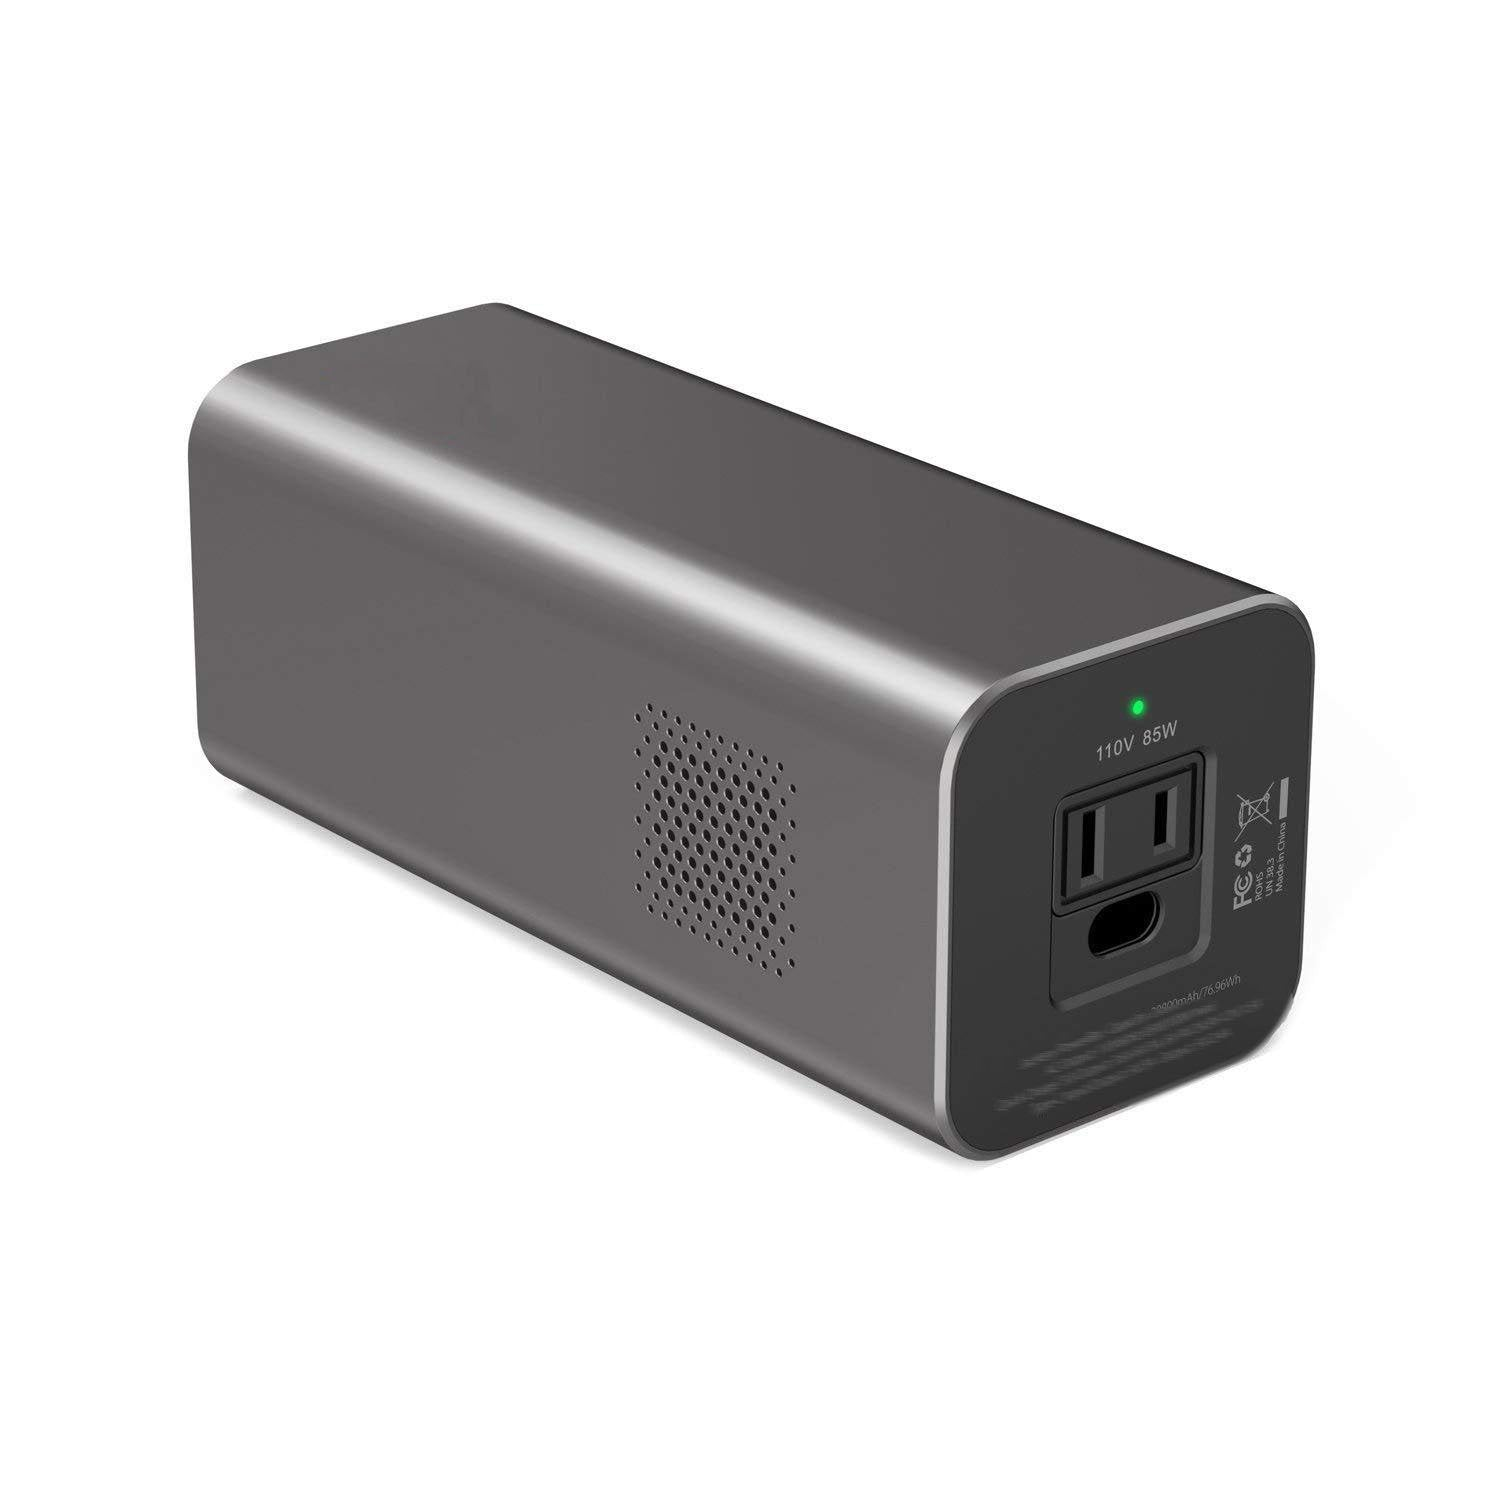 Portable Laptop Charger (100W Max)